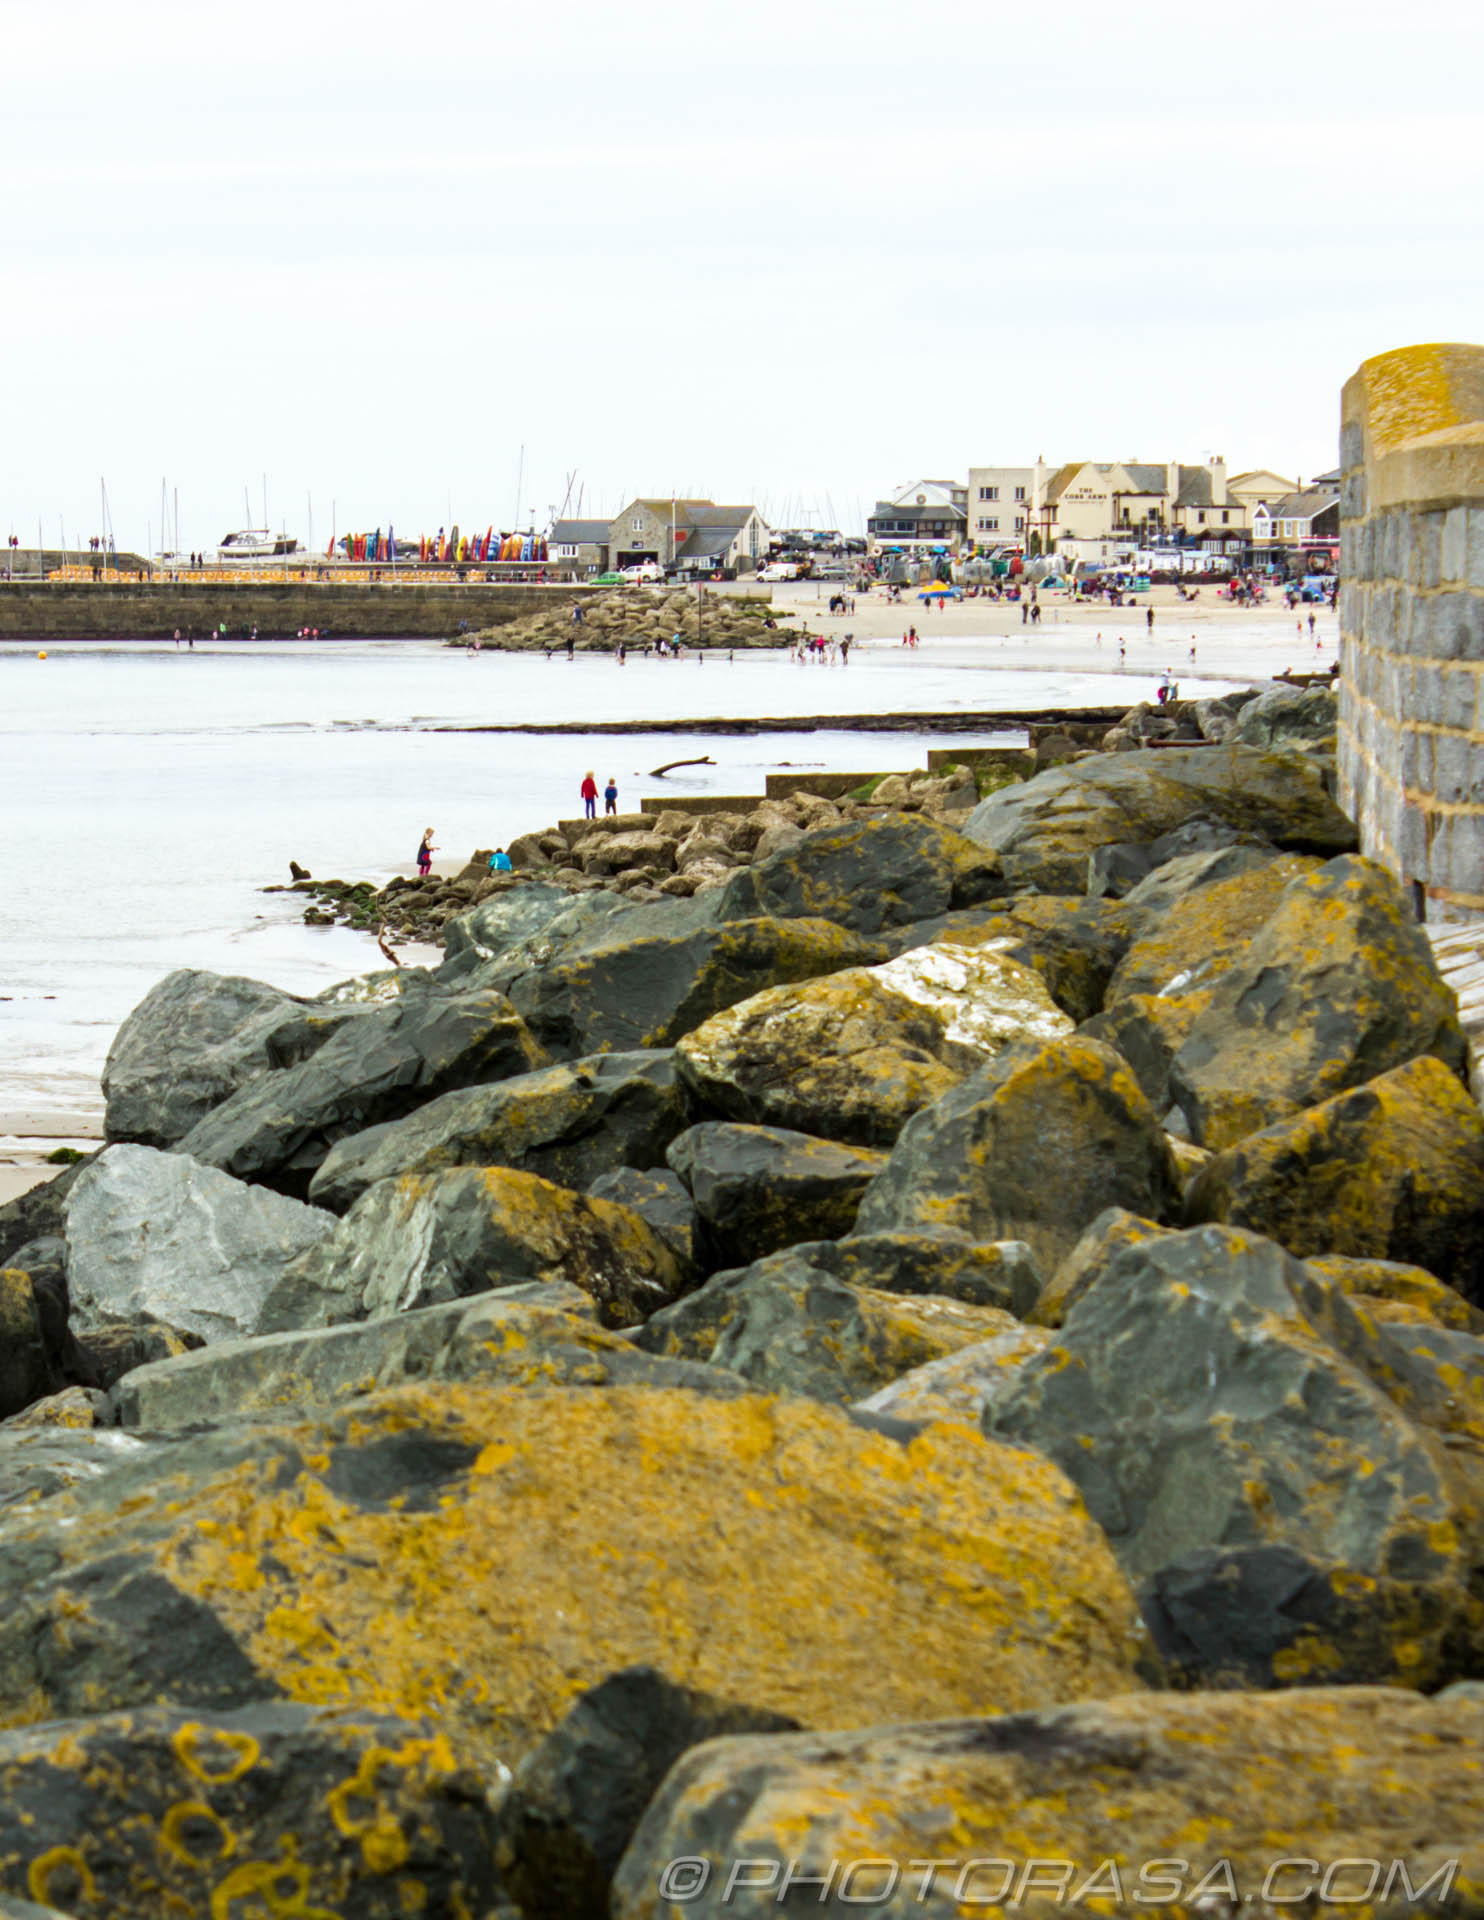 http://photorasa.com/lyme-regis/lyme-regis-across-the-rocks/